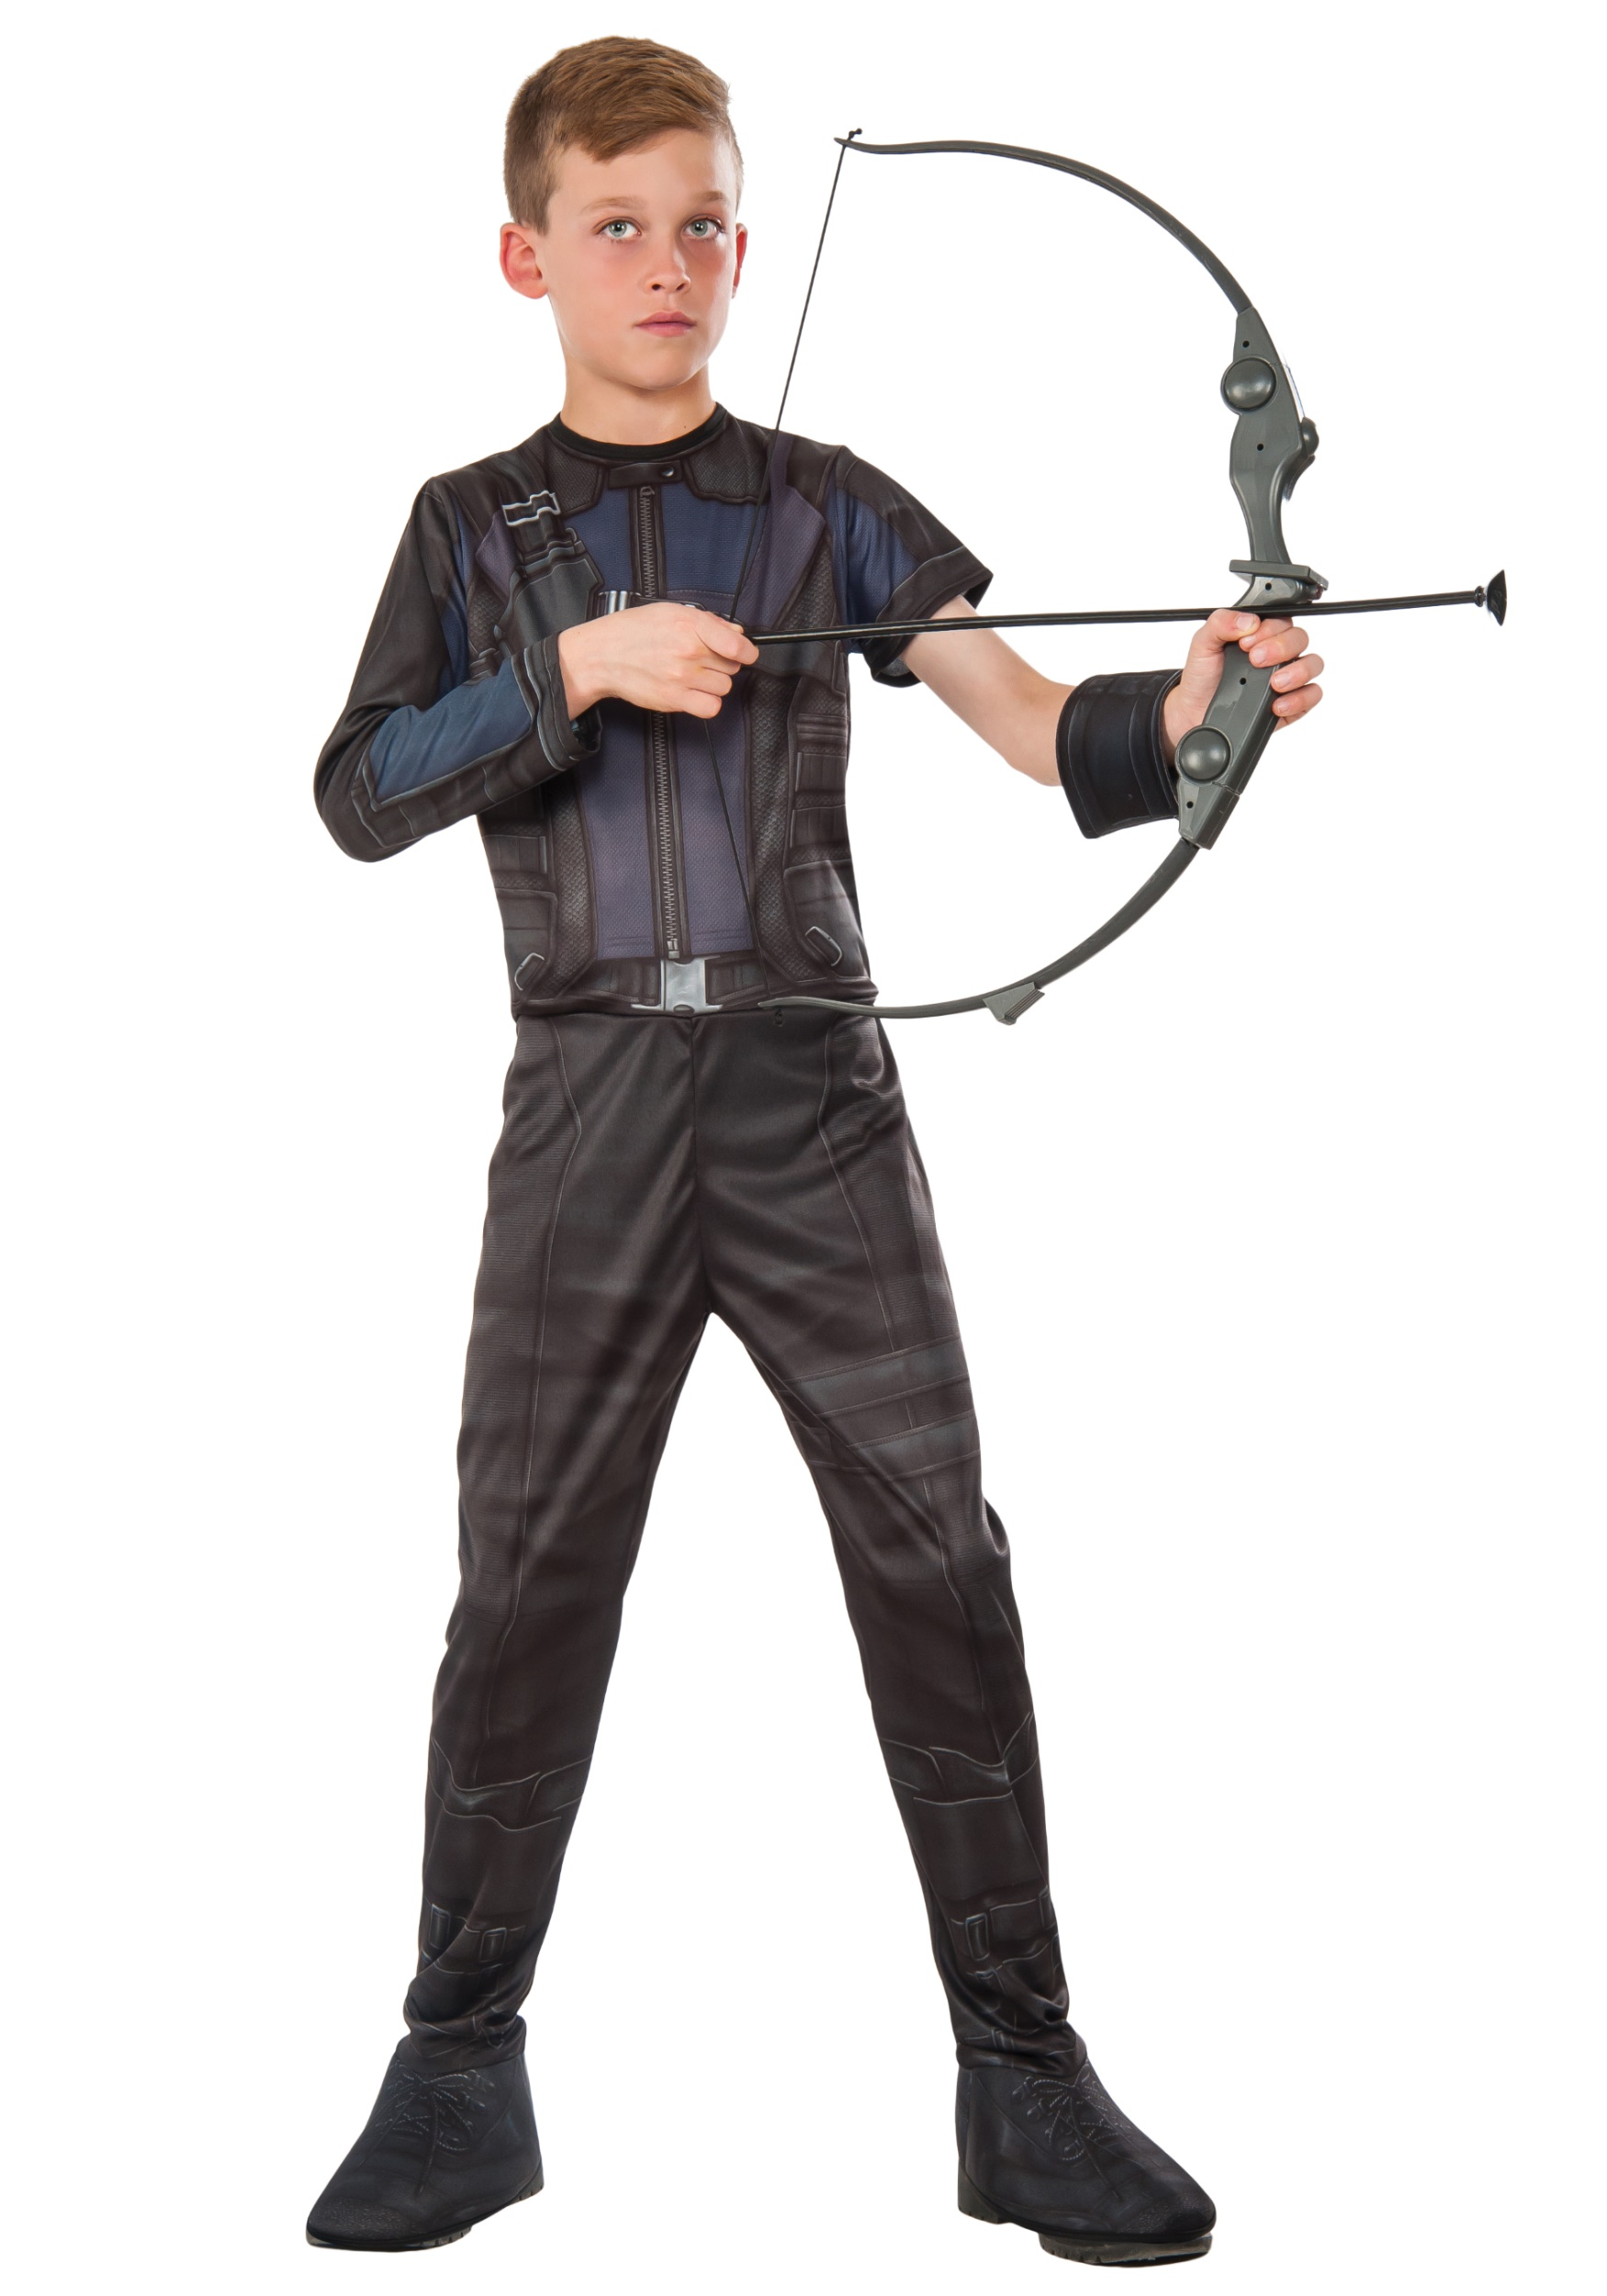 Hawkeye Bow and Arrow Set. $14.99. Adult Deluxe Hawkeye Avengers 2 Costume  sc 1 st  Halloween Costumes & Avengers Hawkeye Costumes for Kids u0026 Adults